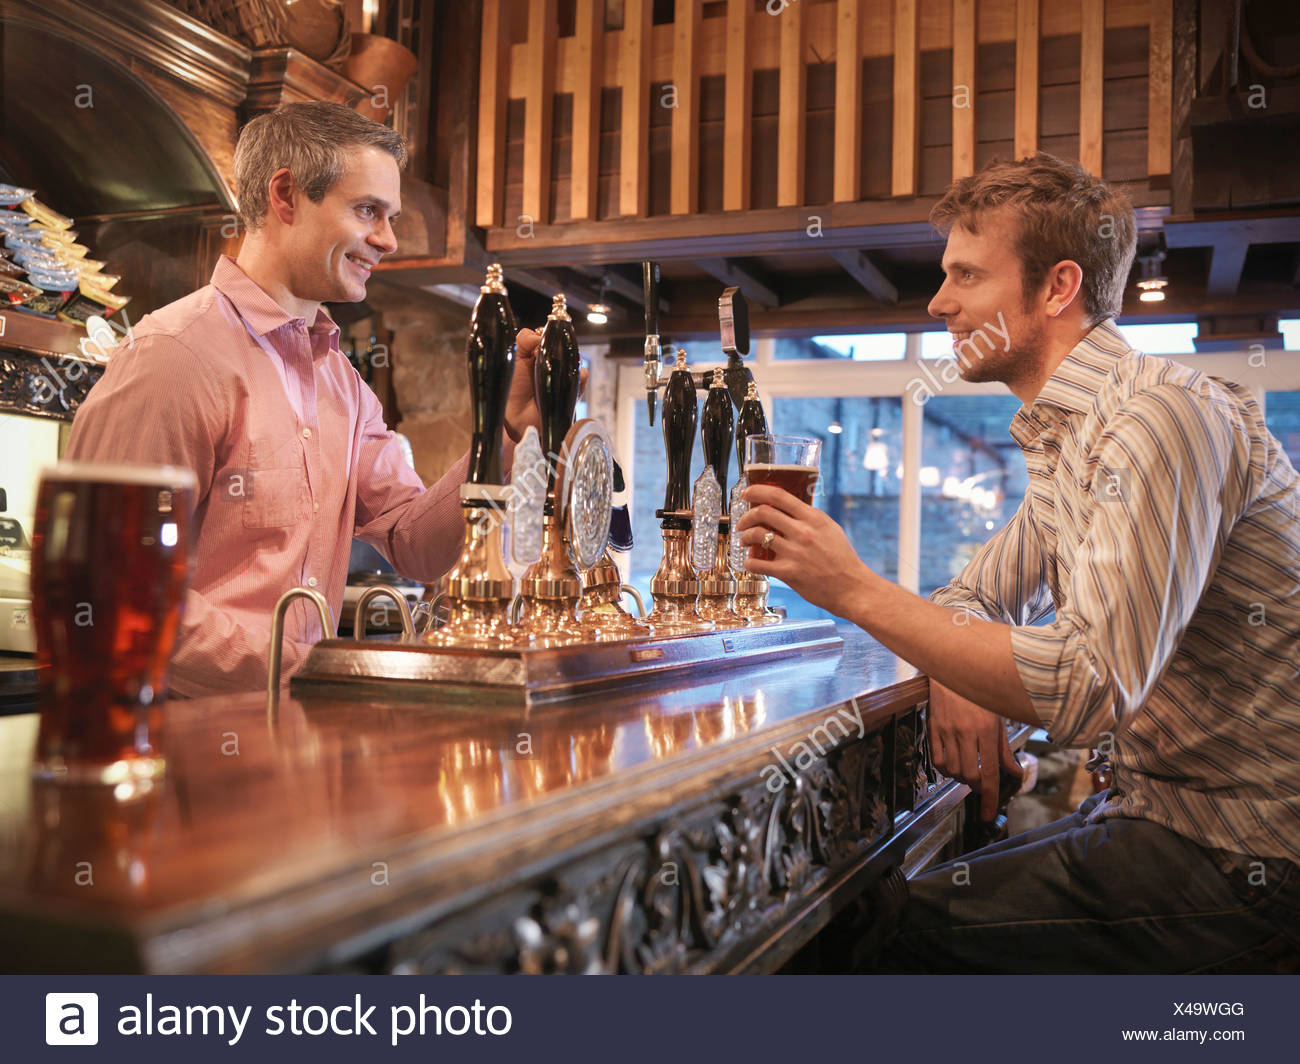 Landlord and customer in English pub - Stock Image